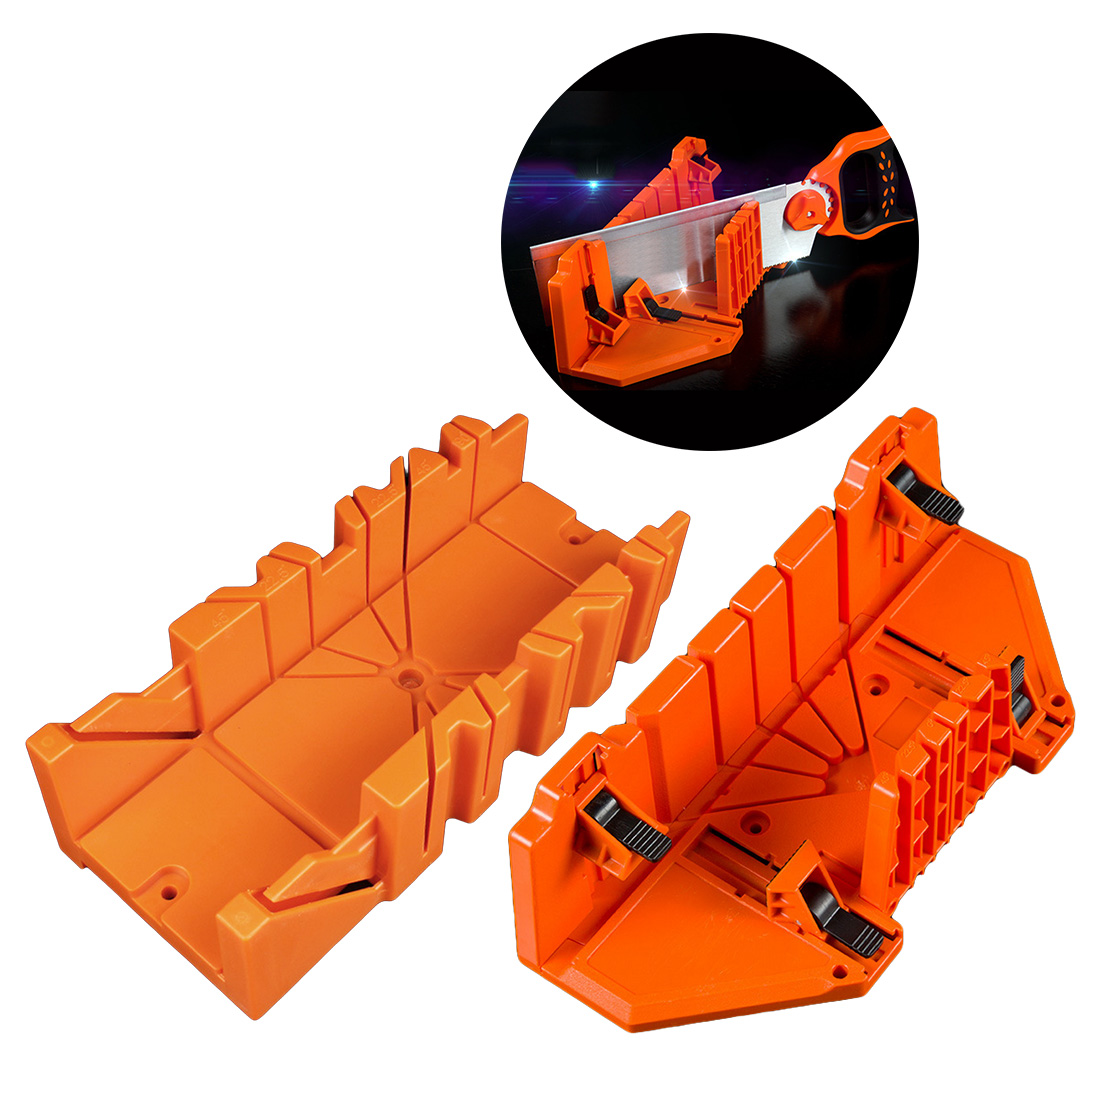 New 12 /14 Inch Miter Saw Cabinets Multifunction Woodworking Hand Tools Home DIY Wood Working Hand Saws Clamped Box